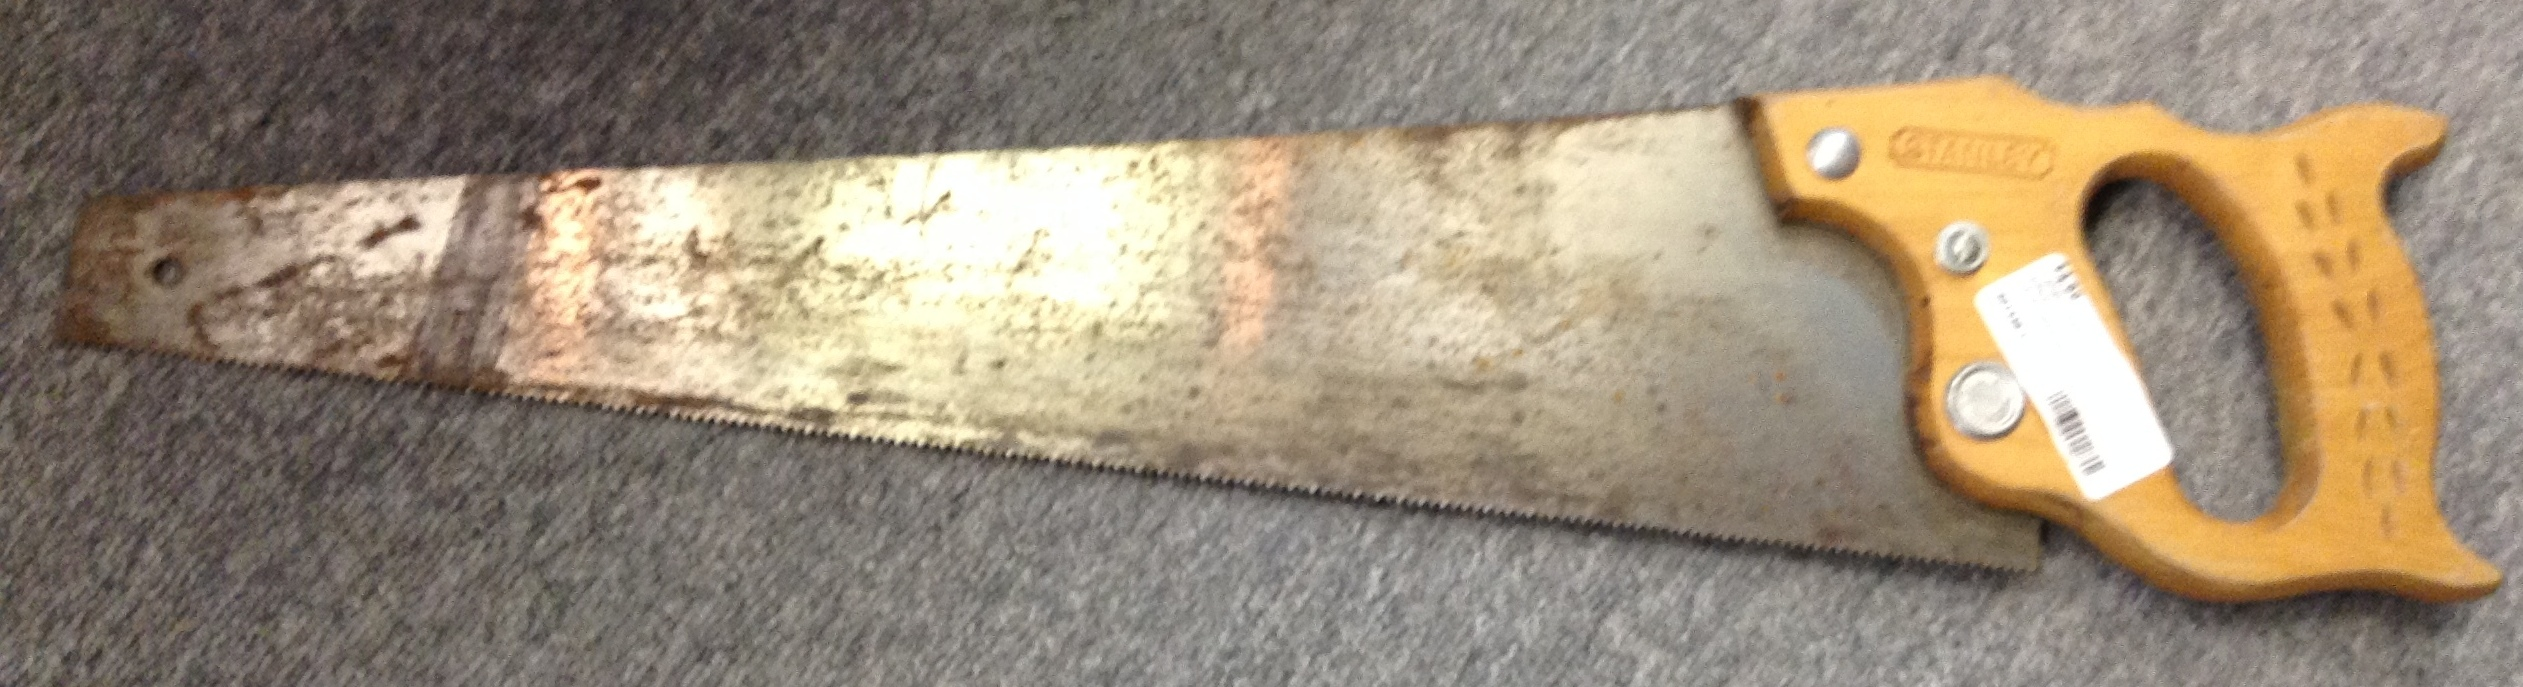 STANLEY HAND SAW